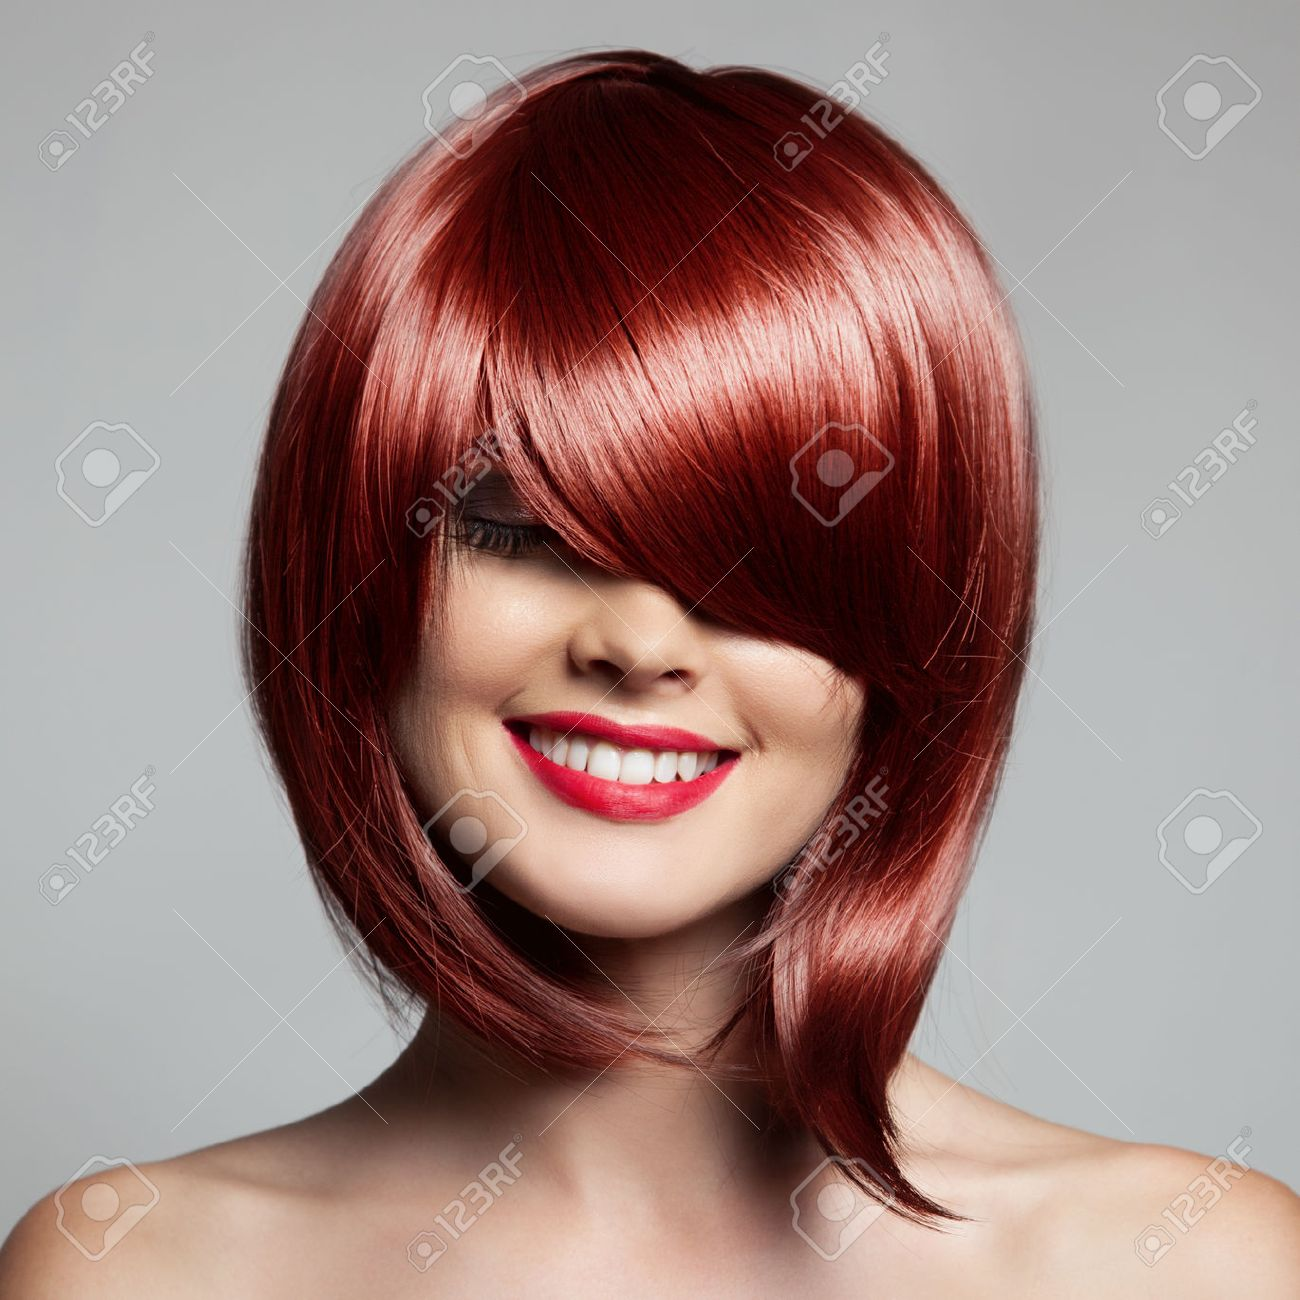 Smiling Beautiful Woman With Red Short Hair. Haircut. Hairstyle. Fringe. - 39586458